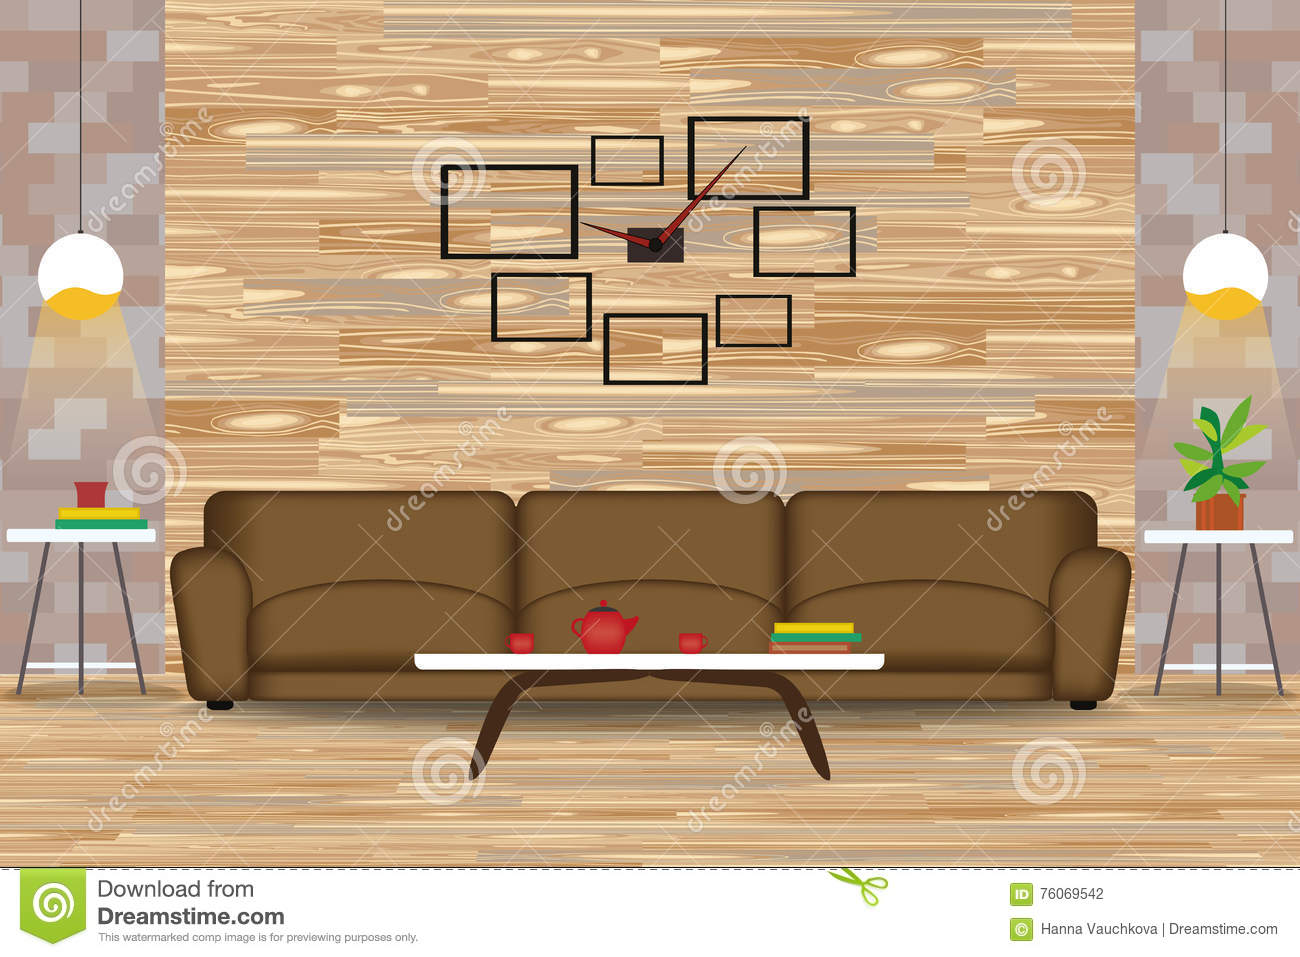 Modern style interior design vector illustration sofa in front of wood wall side tables